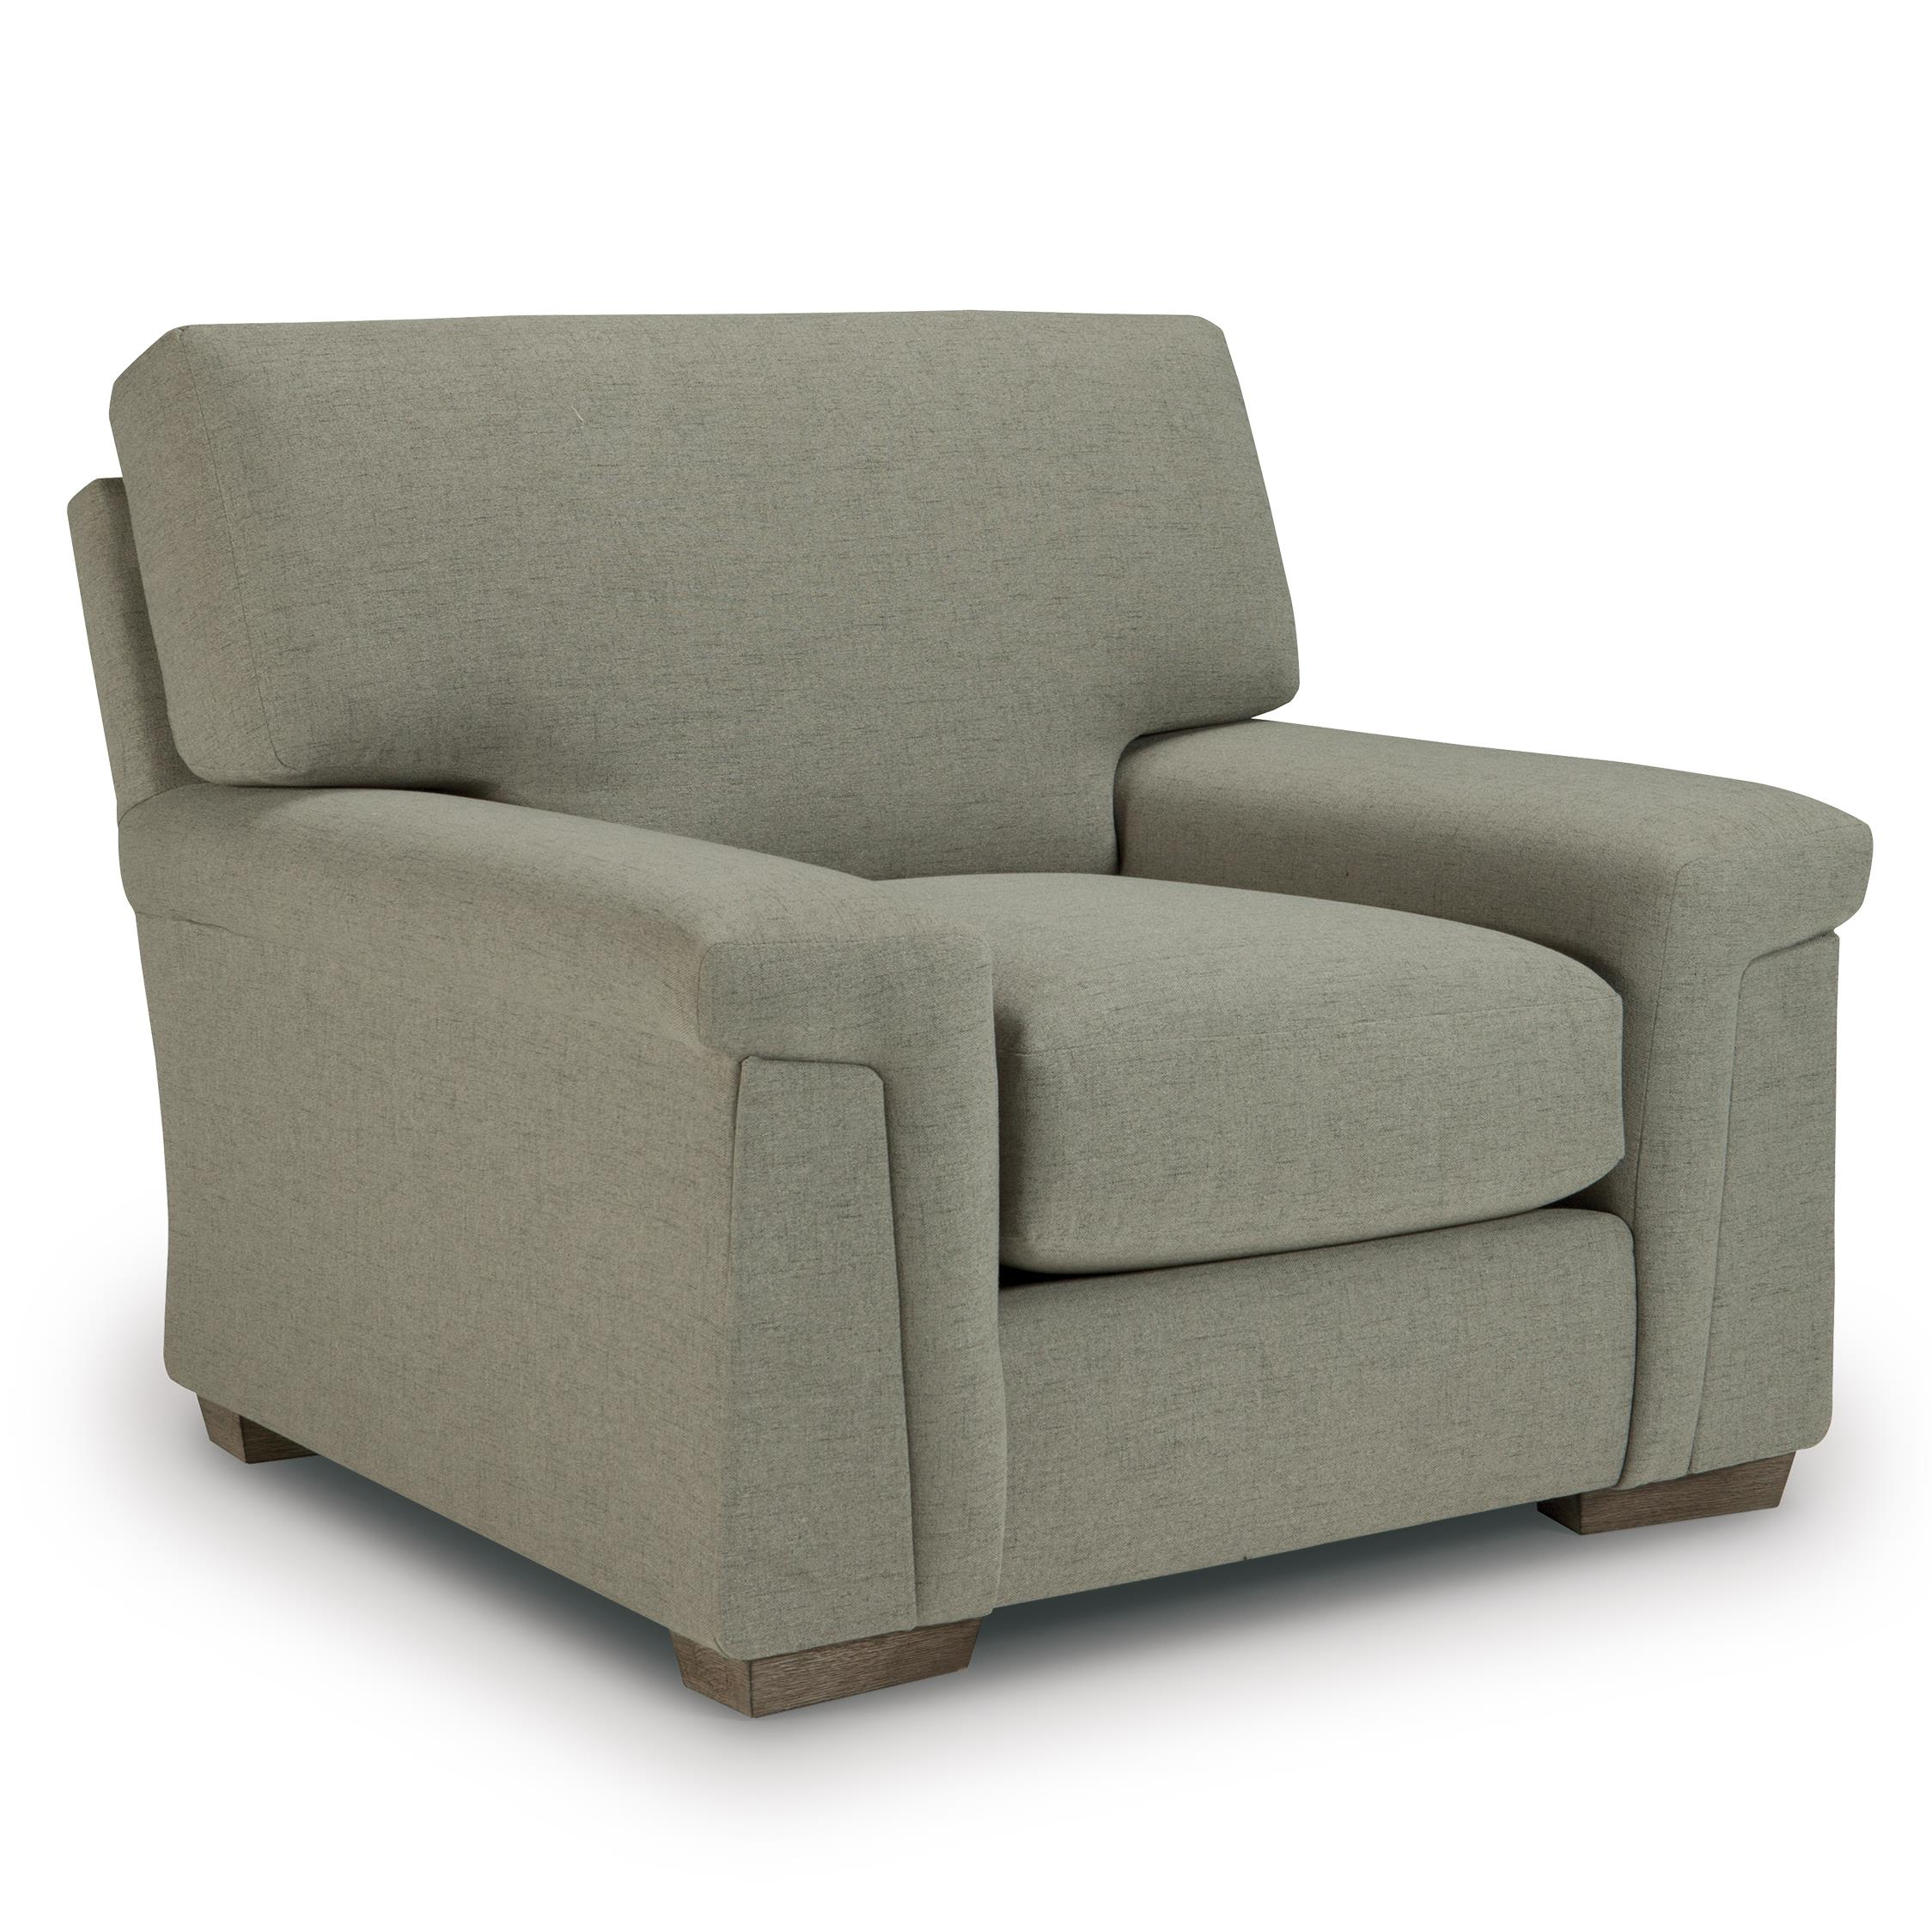 Best Home Furnishings Oliver Club Chair - Item Number: C40-20653